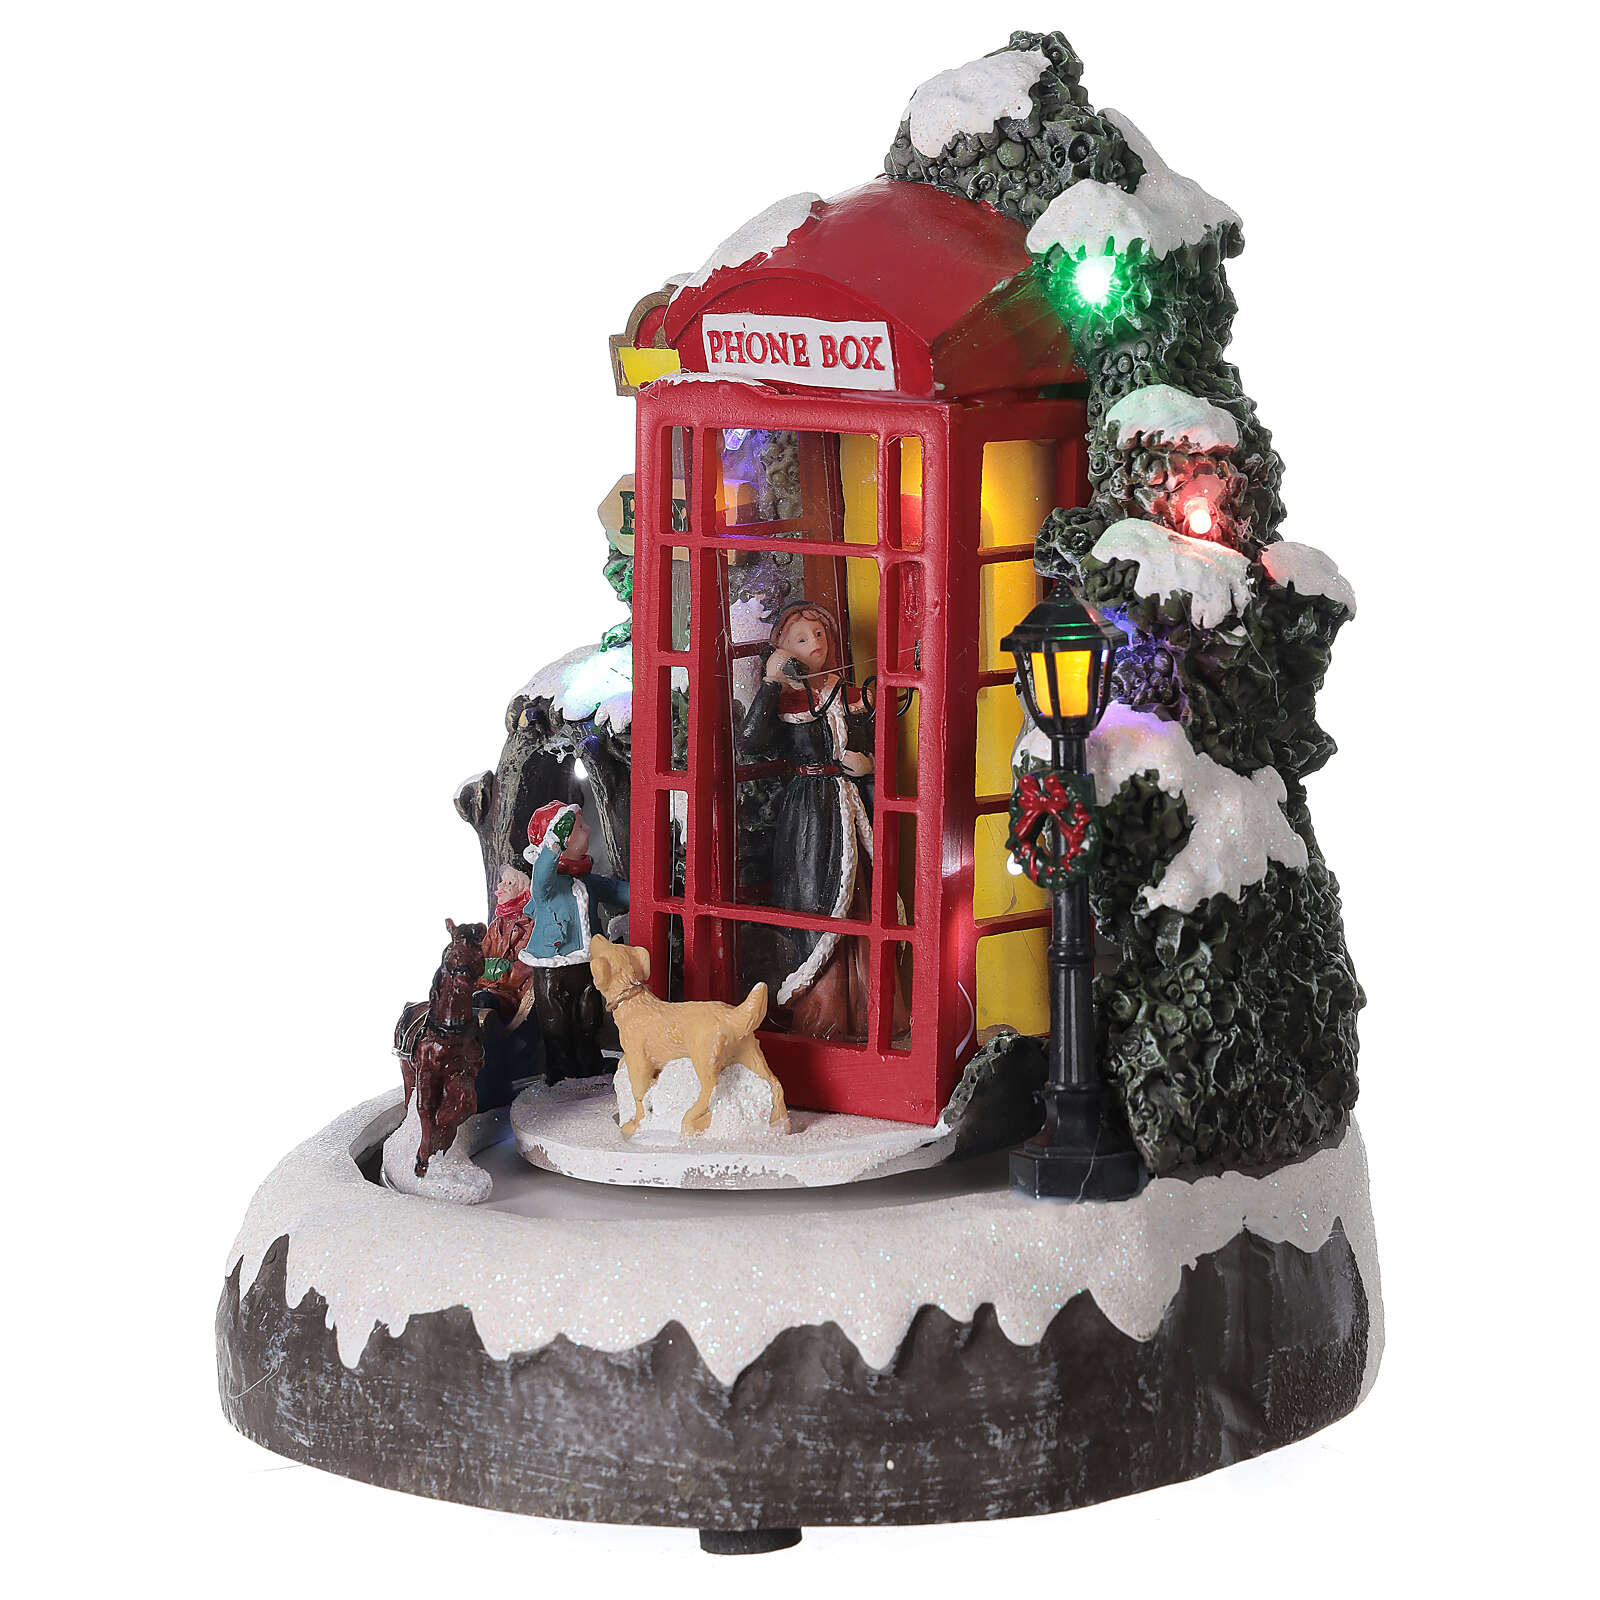 Phone box English family carriage music lights 20x20x20 cm 3